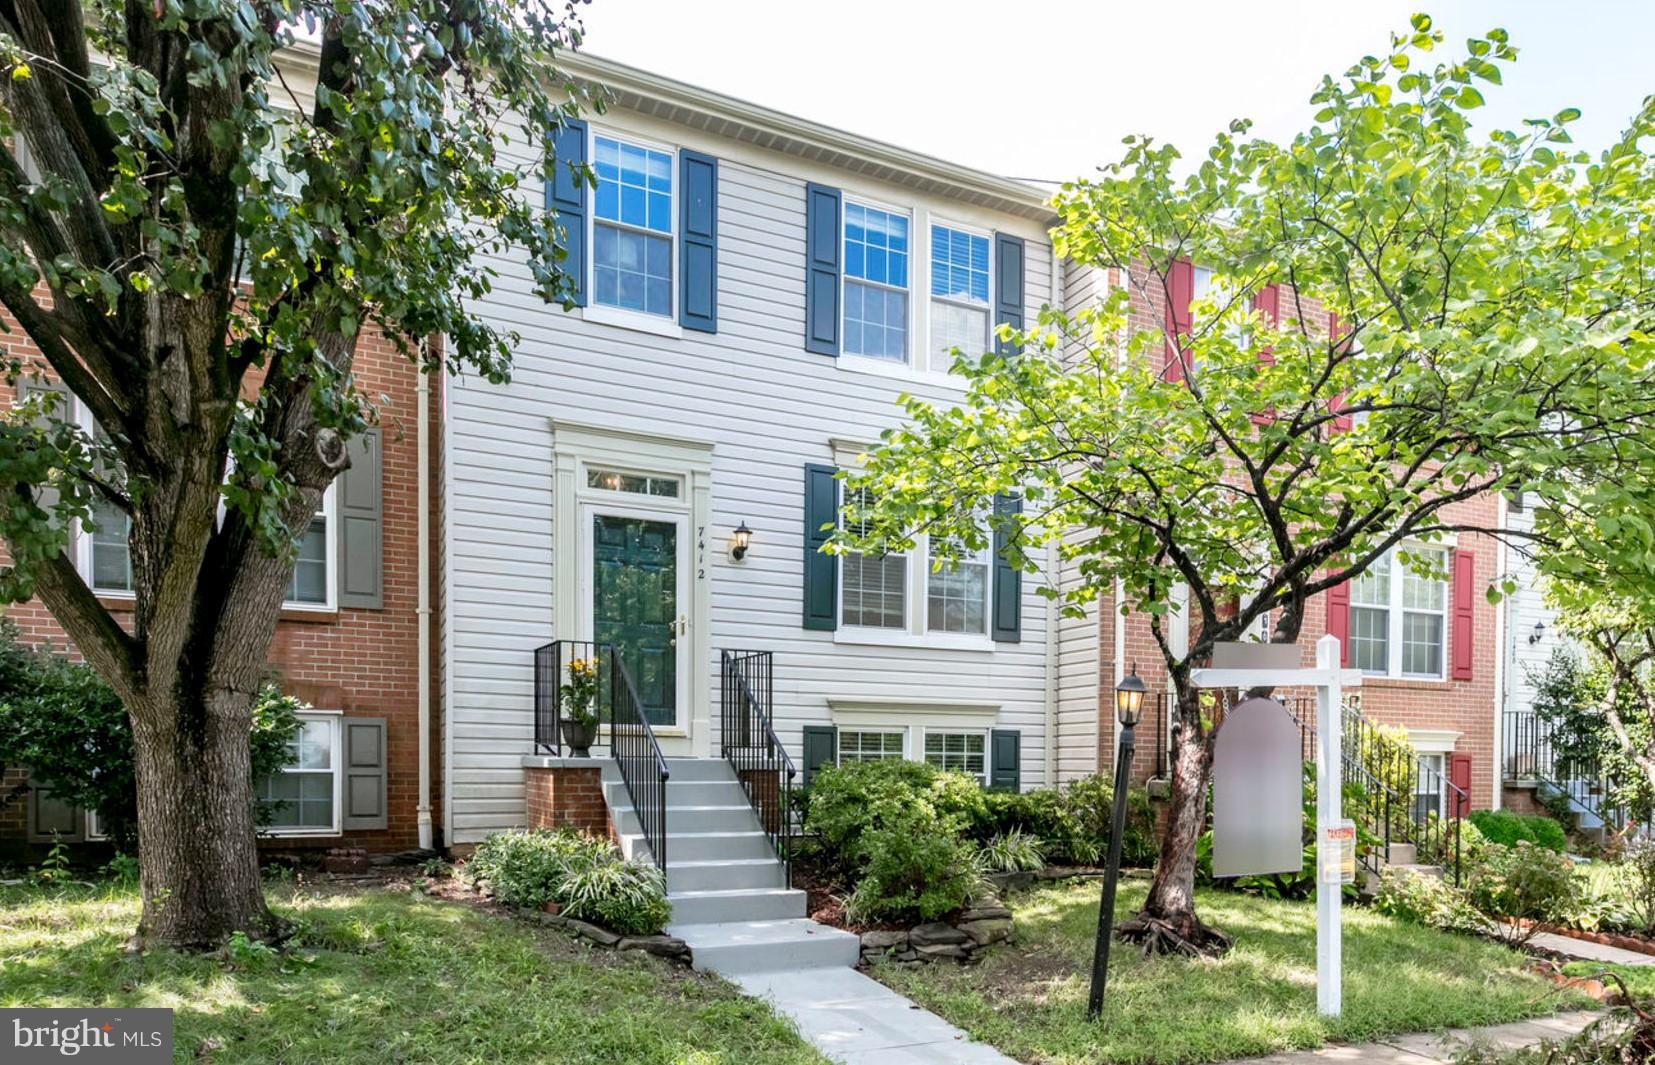 Commuter's dream w/ EZ access to I-495/395 and 5 minutes to metro station.  Modern TH in desirable Kingstowne is nicely equipped with new dual zone AC (2017), new deck (2017) and new roof (2014).  Up to ~$6,000 in closing cost help may be available on conventional loans and up to $4600 in help may be available with VA loans through PenFed FCU - contact me for details!